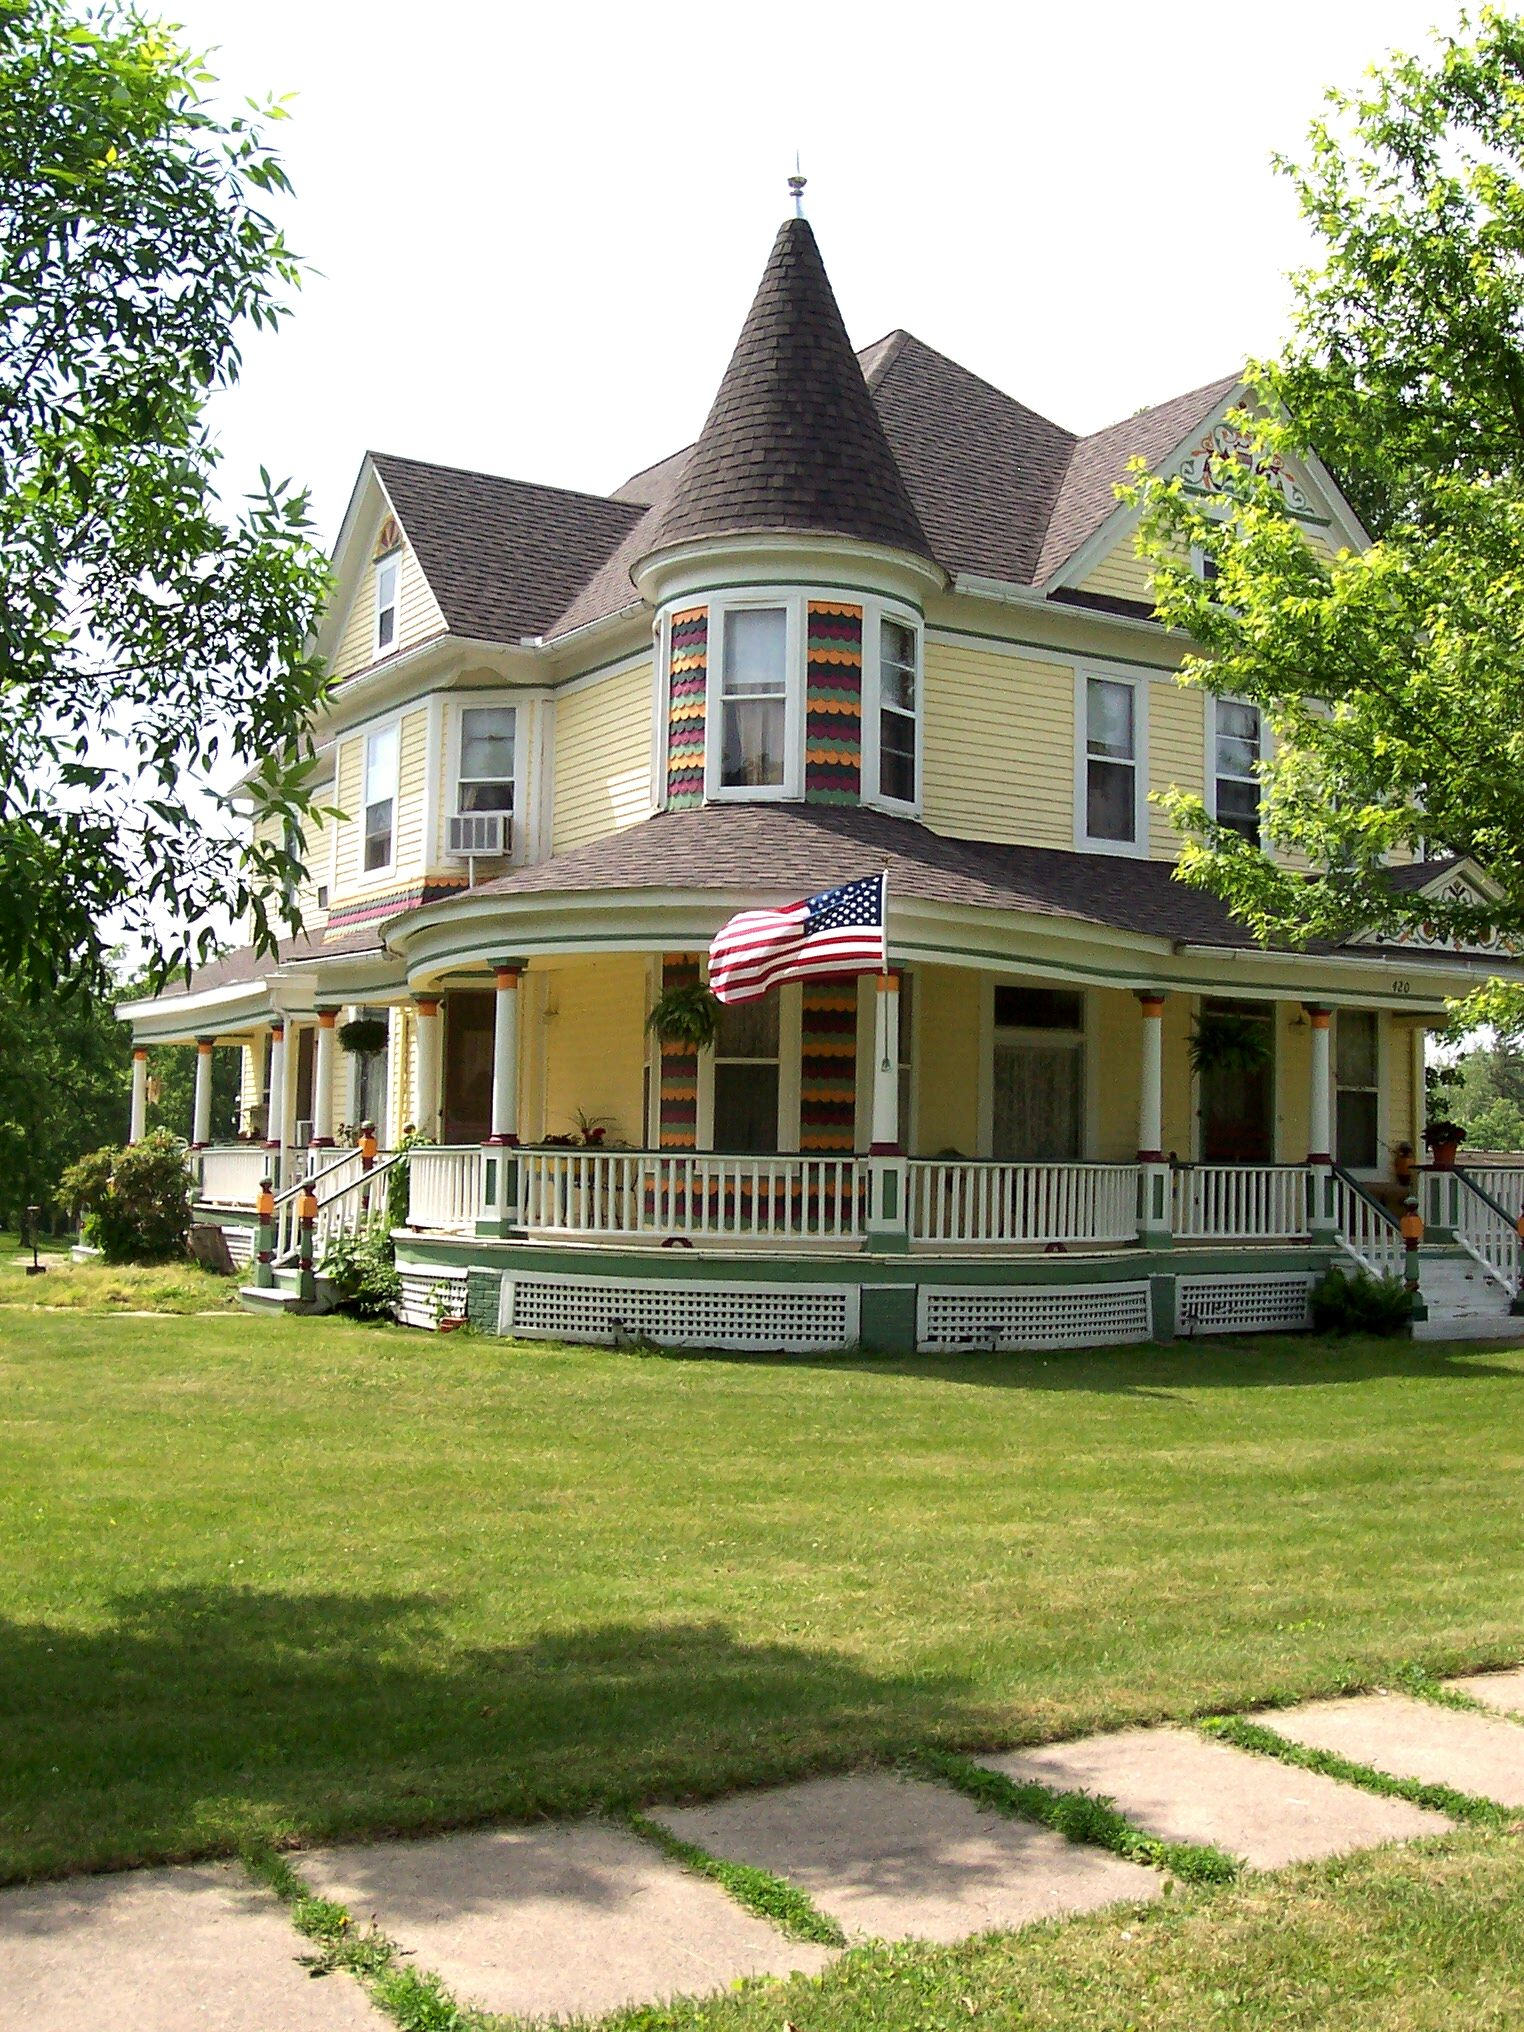 I dreamt of always owning a home with a wrap around porch